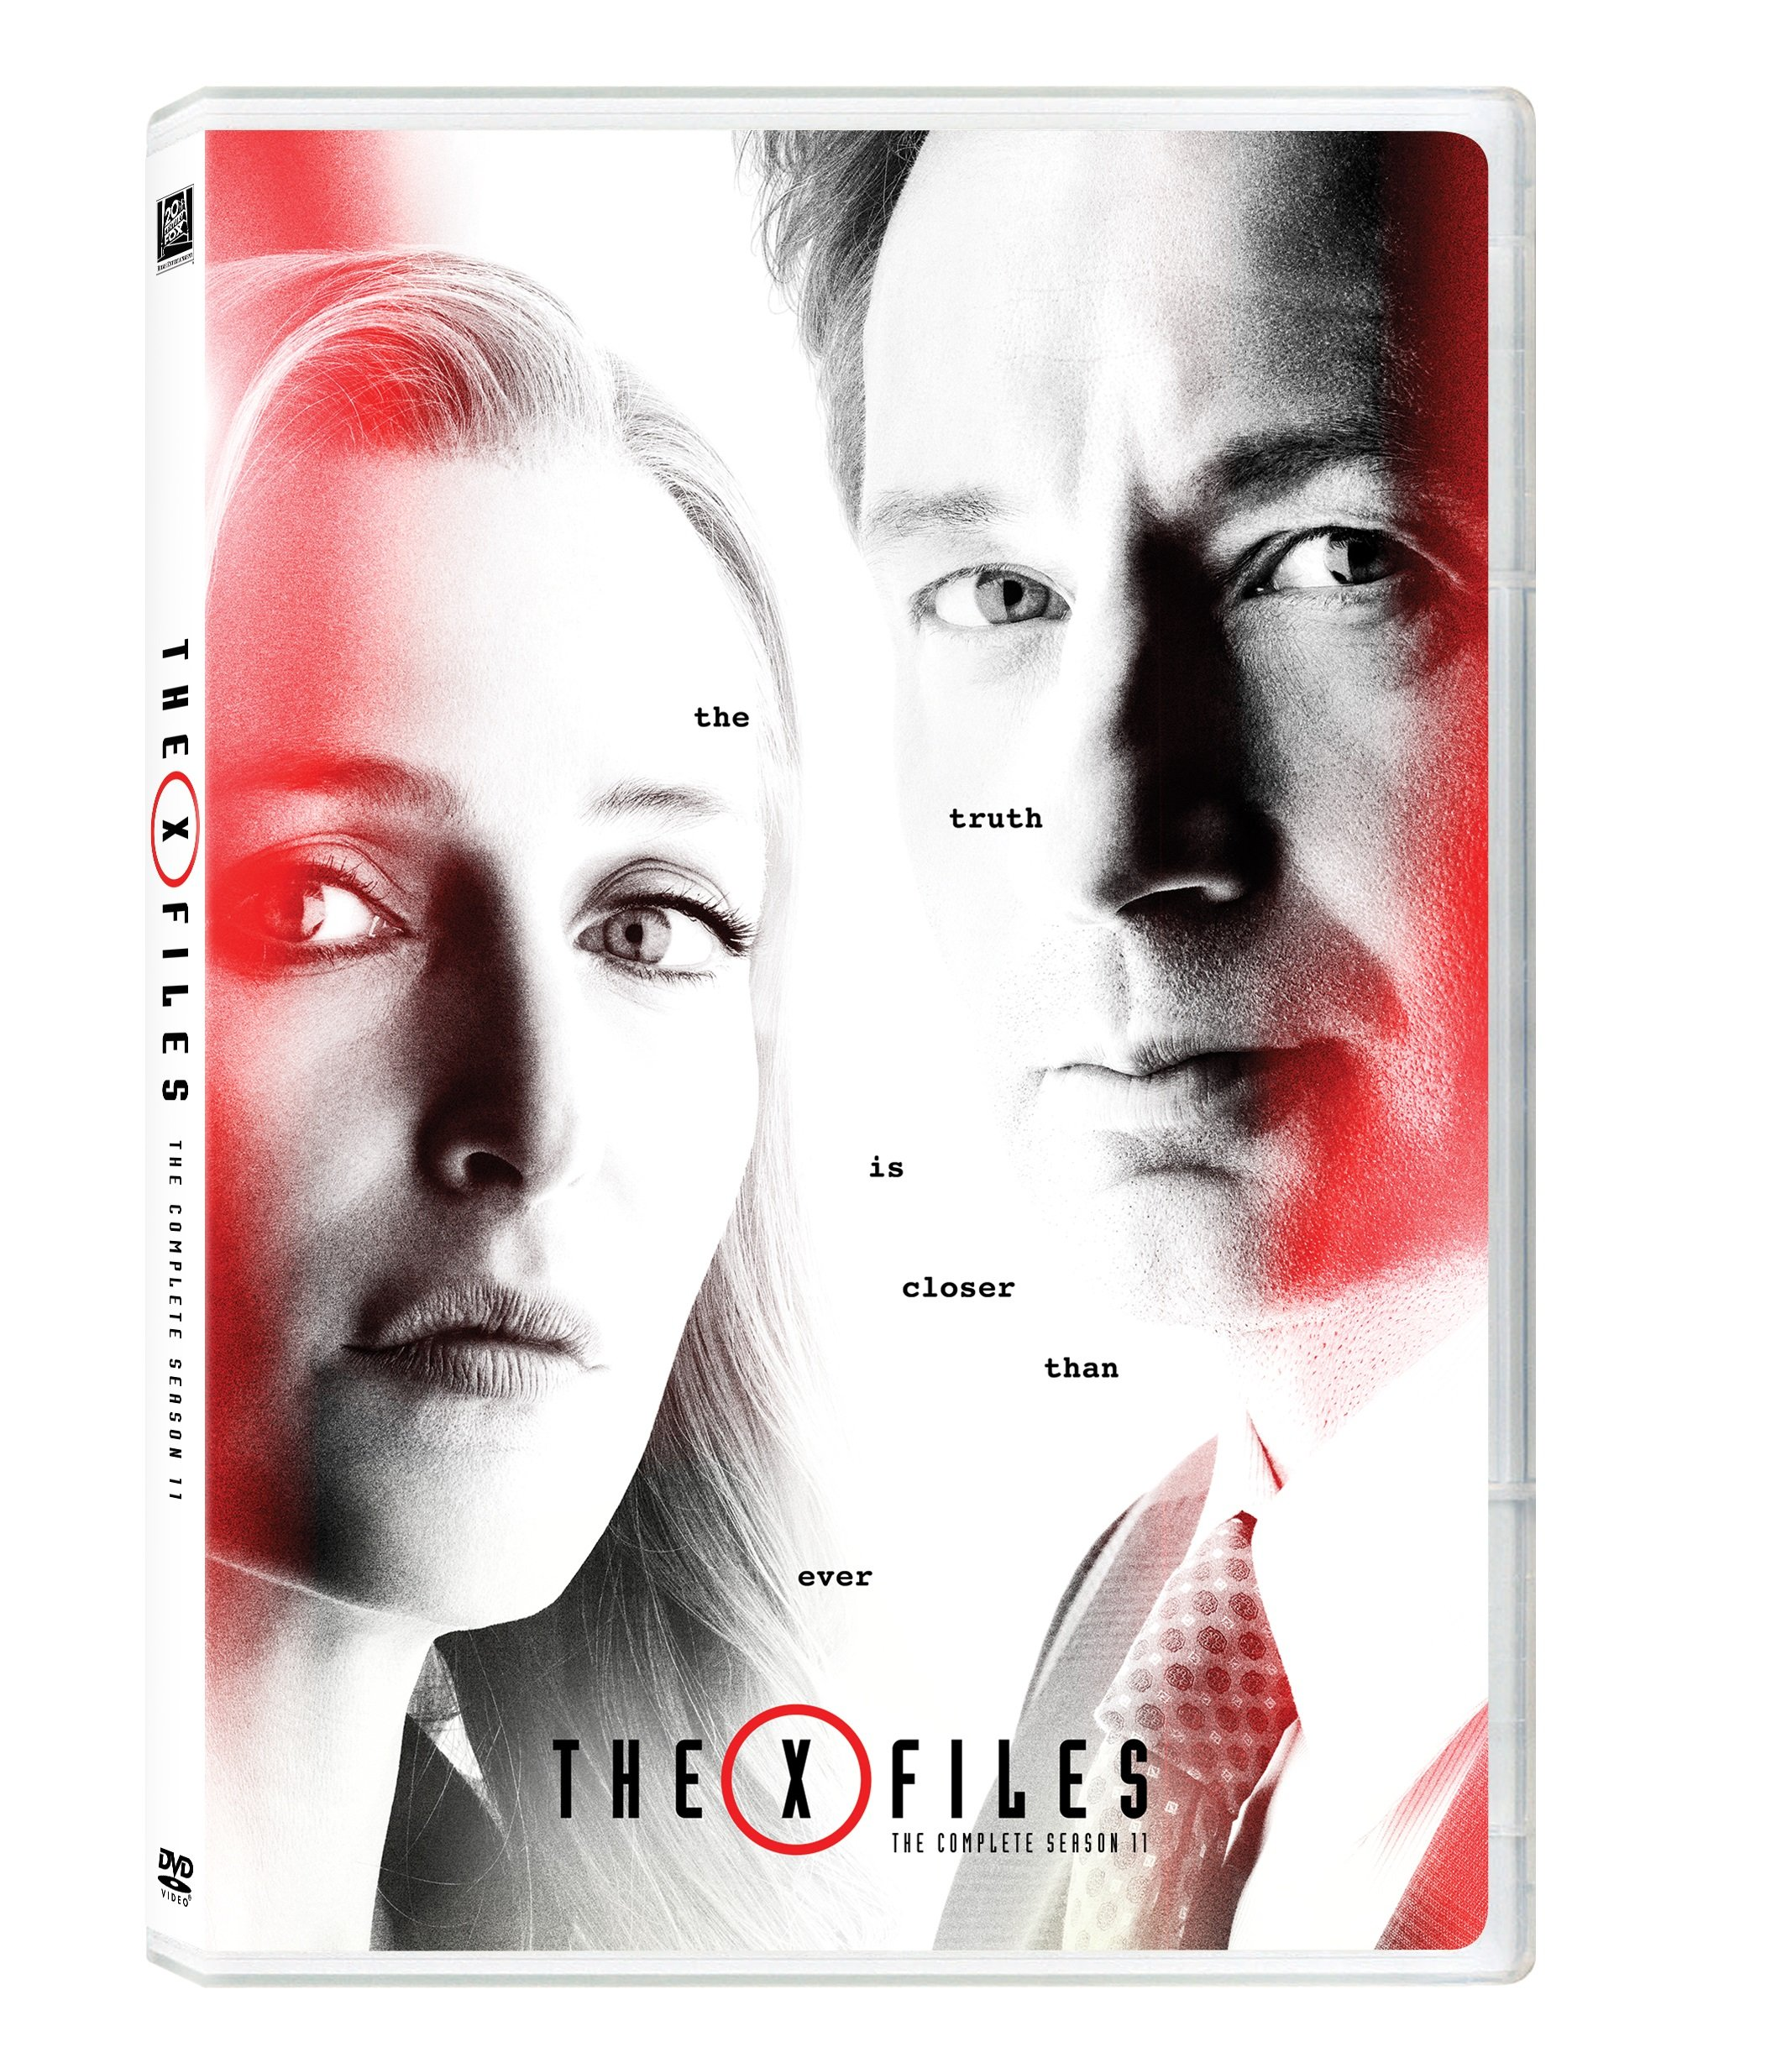 DVD : The X-files: The Complete Eleventh Season (Dolby, Subtitled, Widescreen)